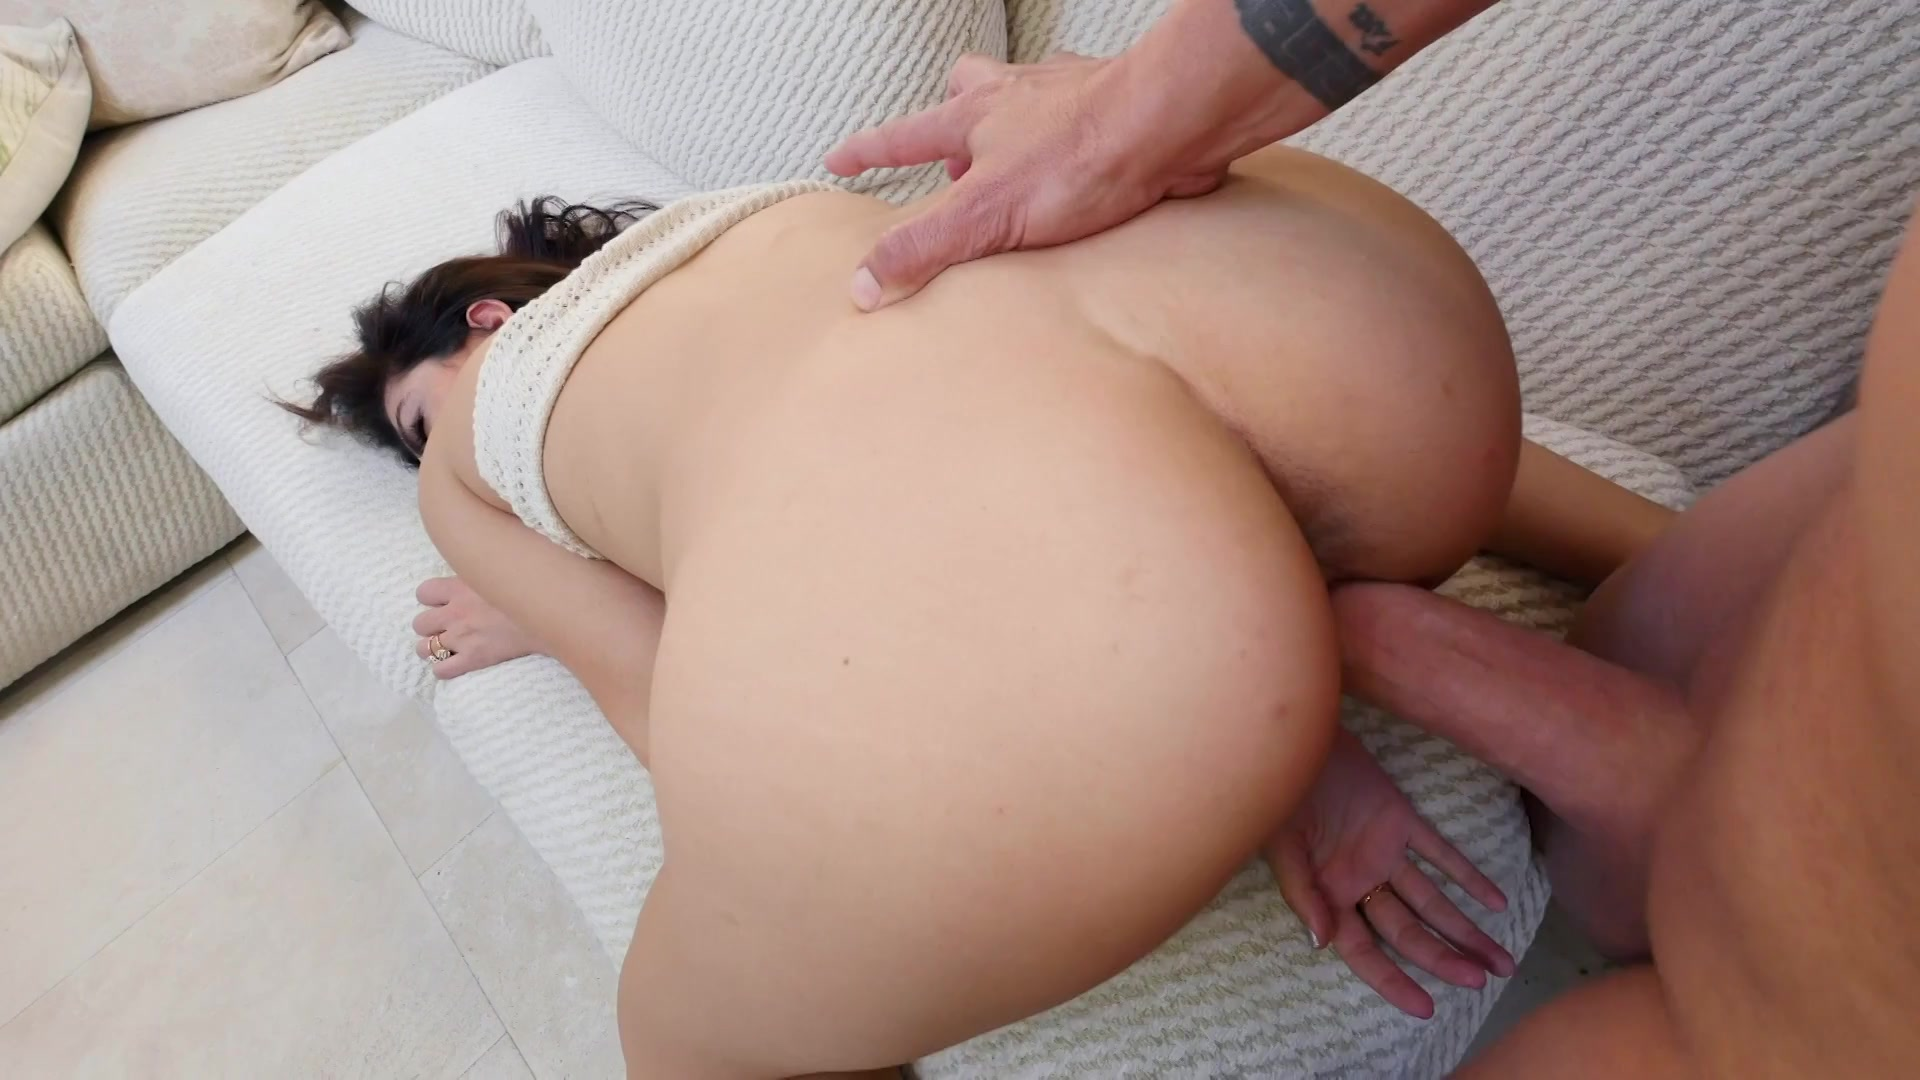 BangBros She's Legal and Ready 9